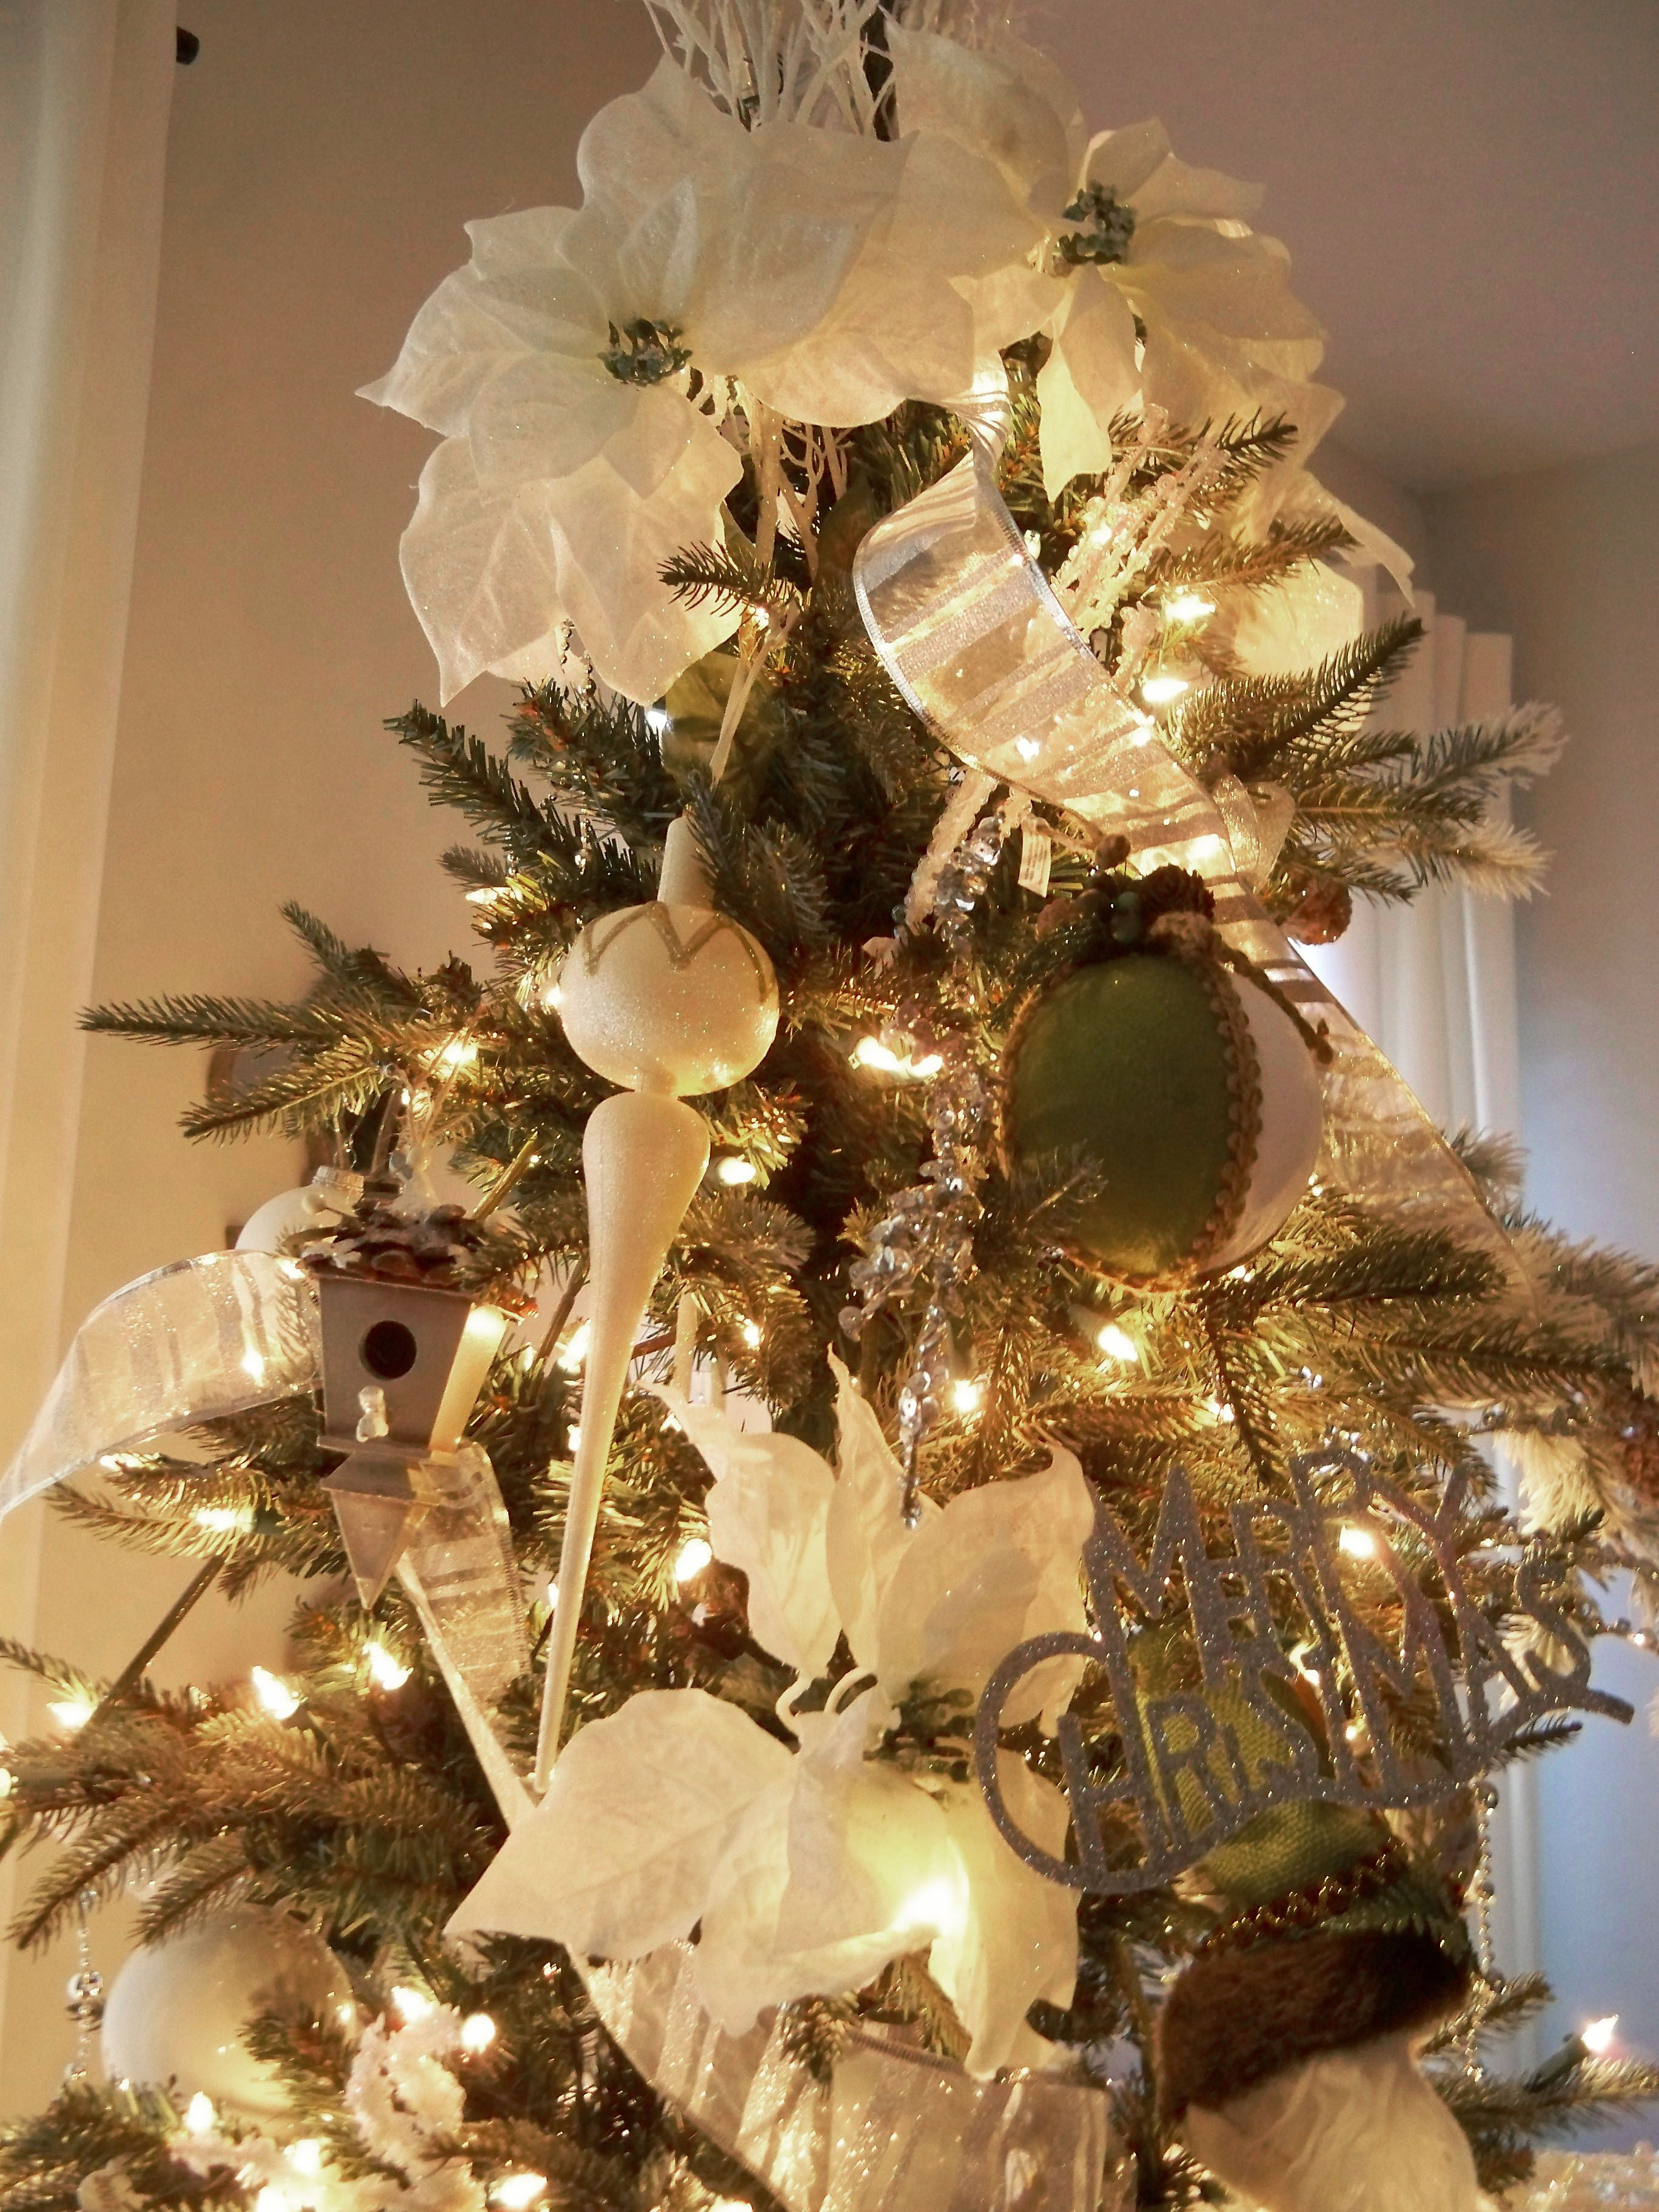 Elegant christmas tree decorating ideas with ribbon - Christmas Interior Interior Design Ideas Exterior Cool White Traditional Christmas Tree With White Ribbon And Green White Ornament Elegant